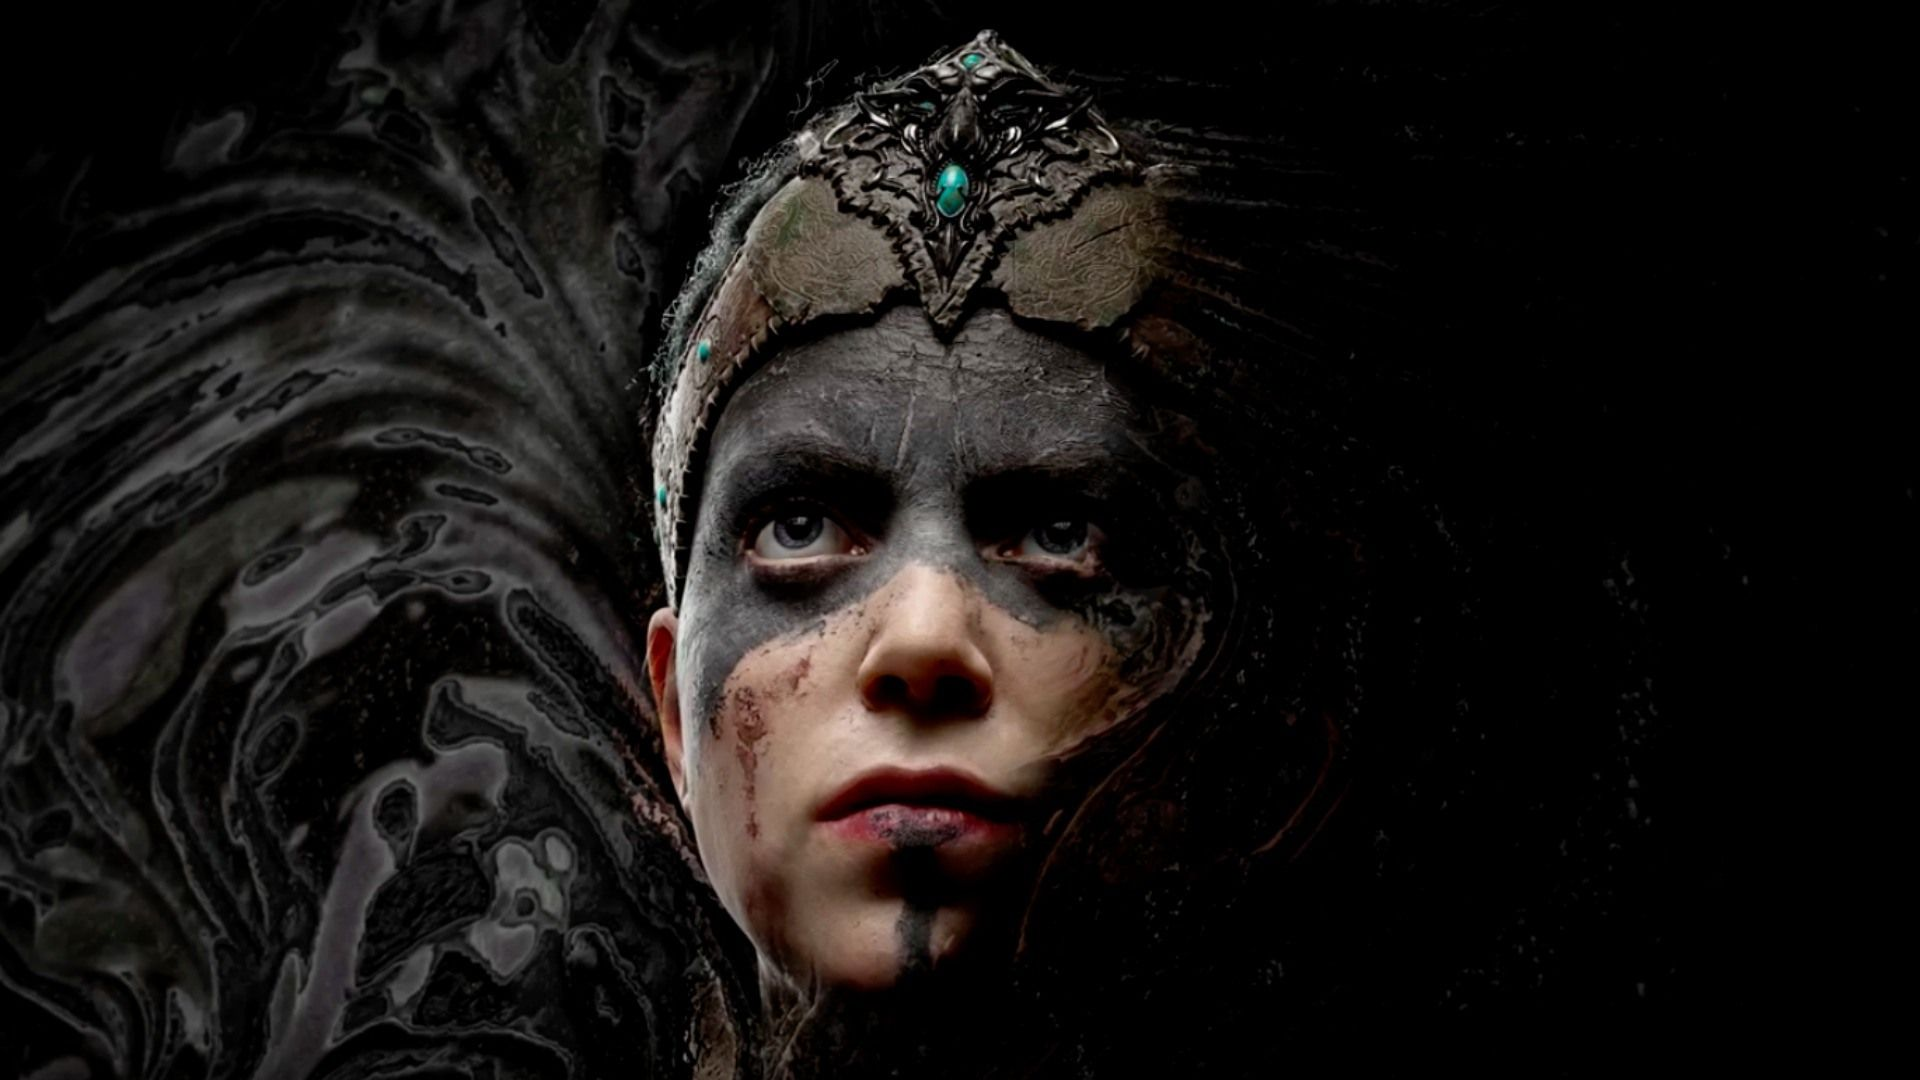 Most viewed Hellblade: Senua's Sacrifice wallpapers